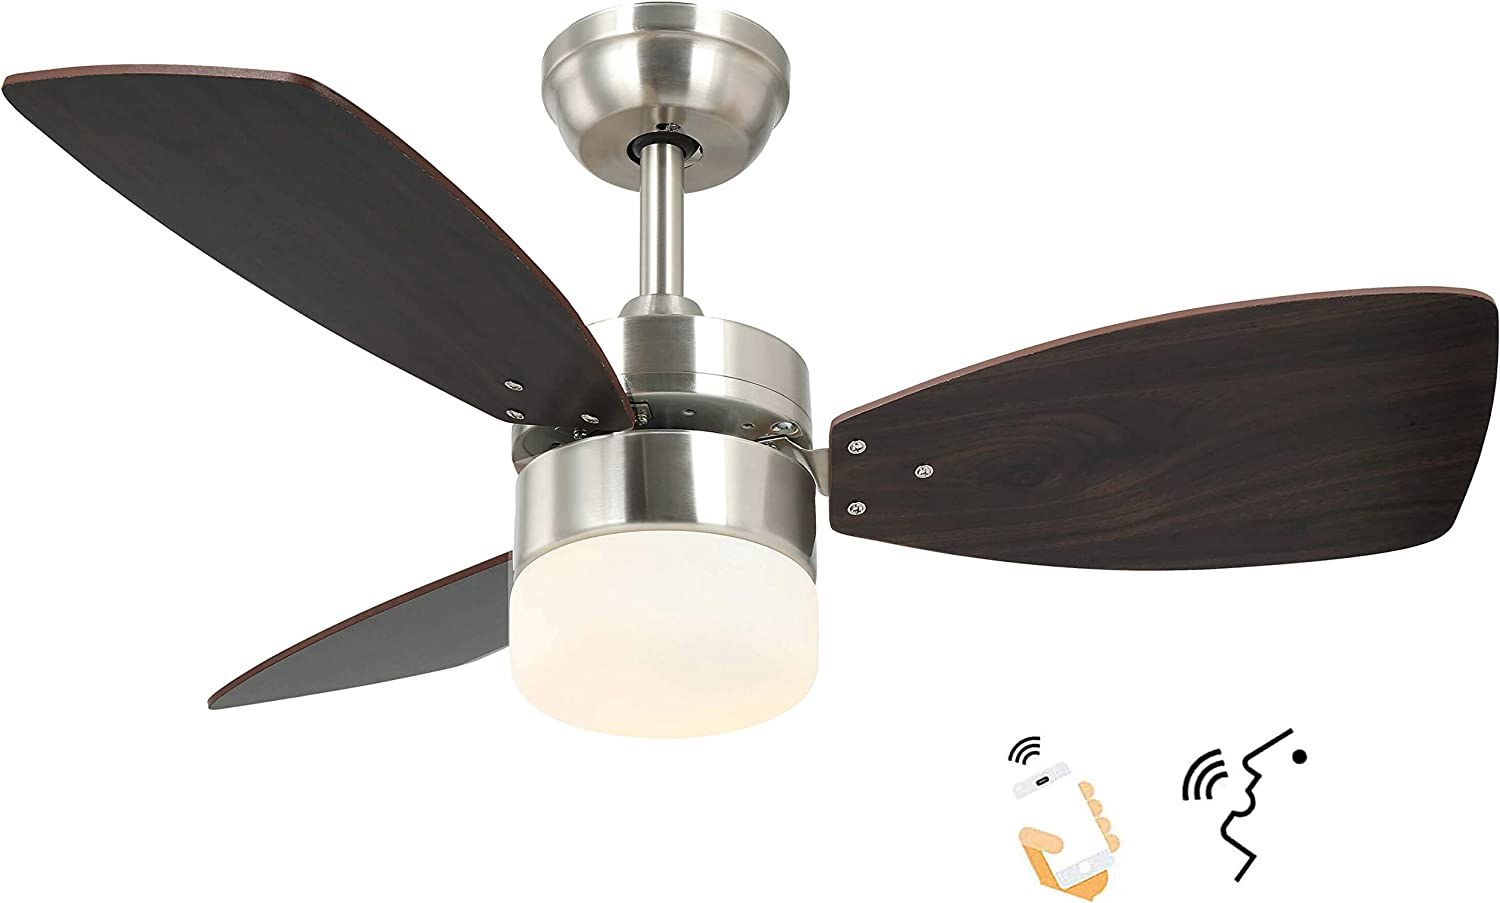 36 Inch Smart Alexa Ceiling Fan Work with Alexa and Google Assistant for Kitchen and Bedroom, Dual-Finish Wood Blades and White Glass lampshade.